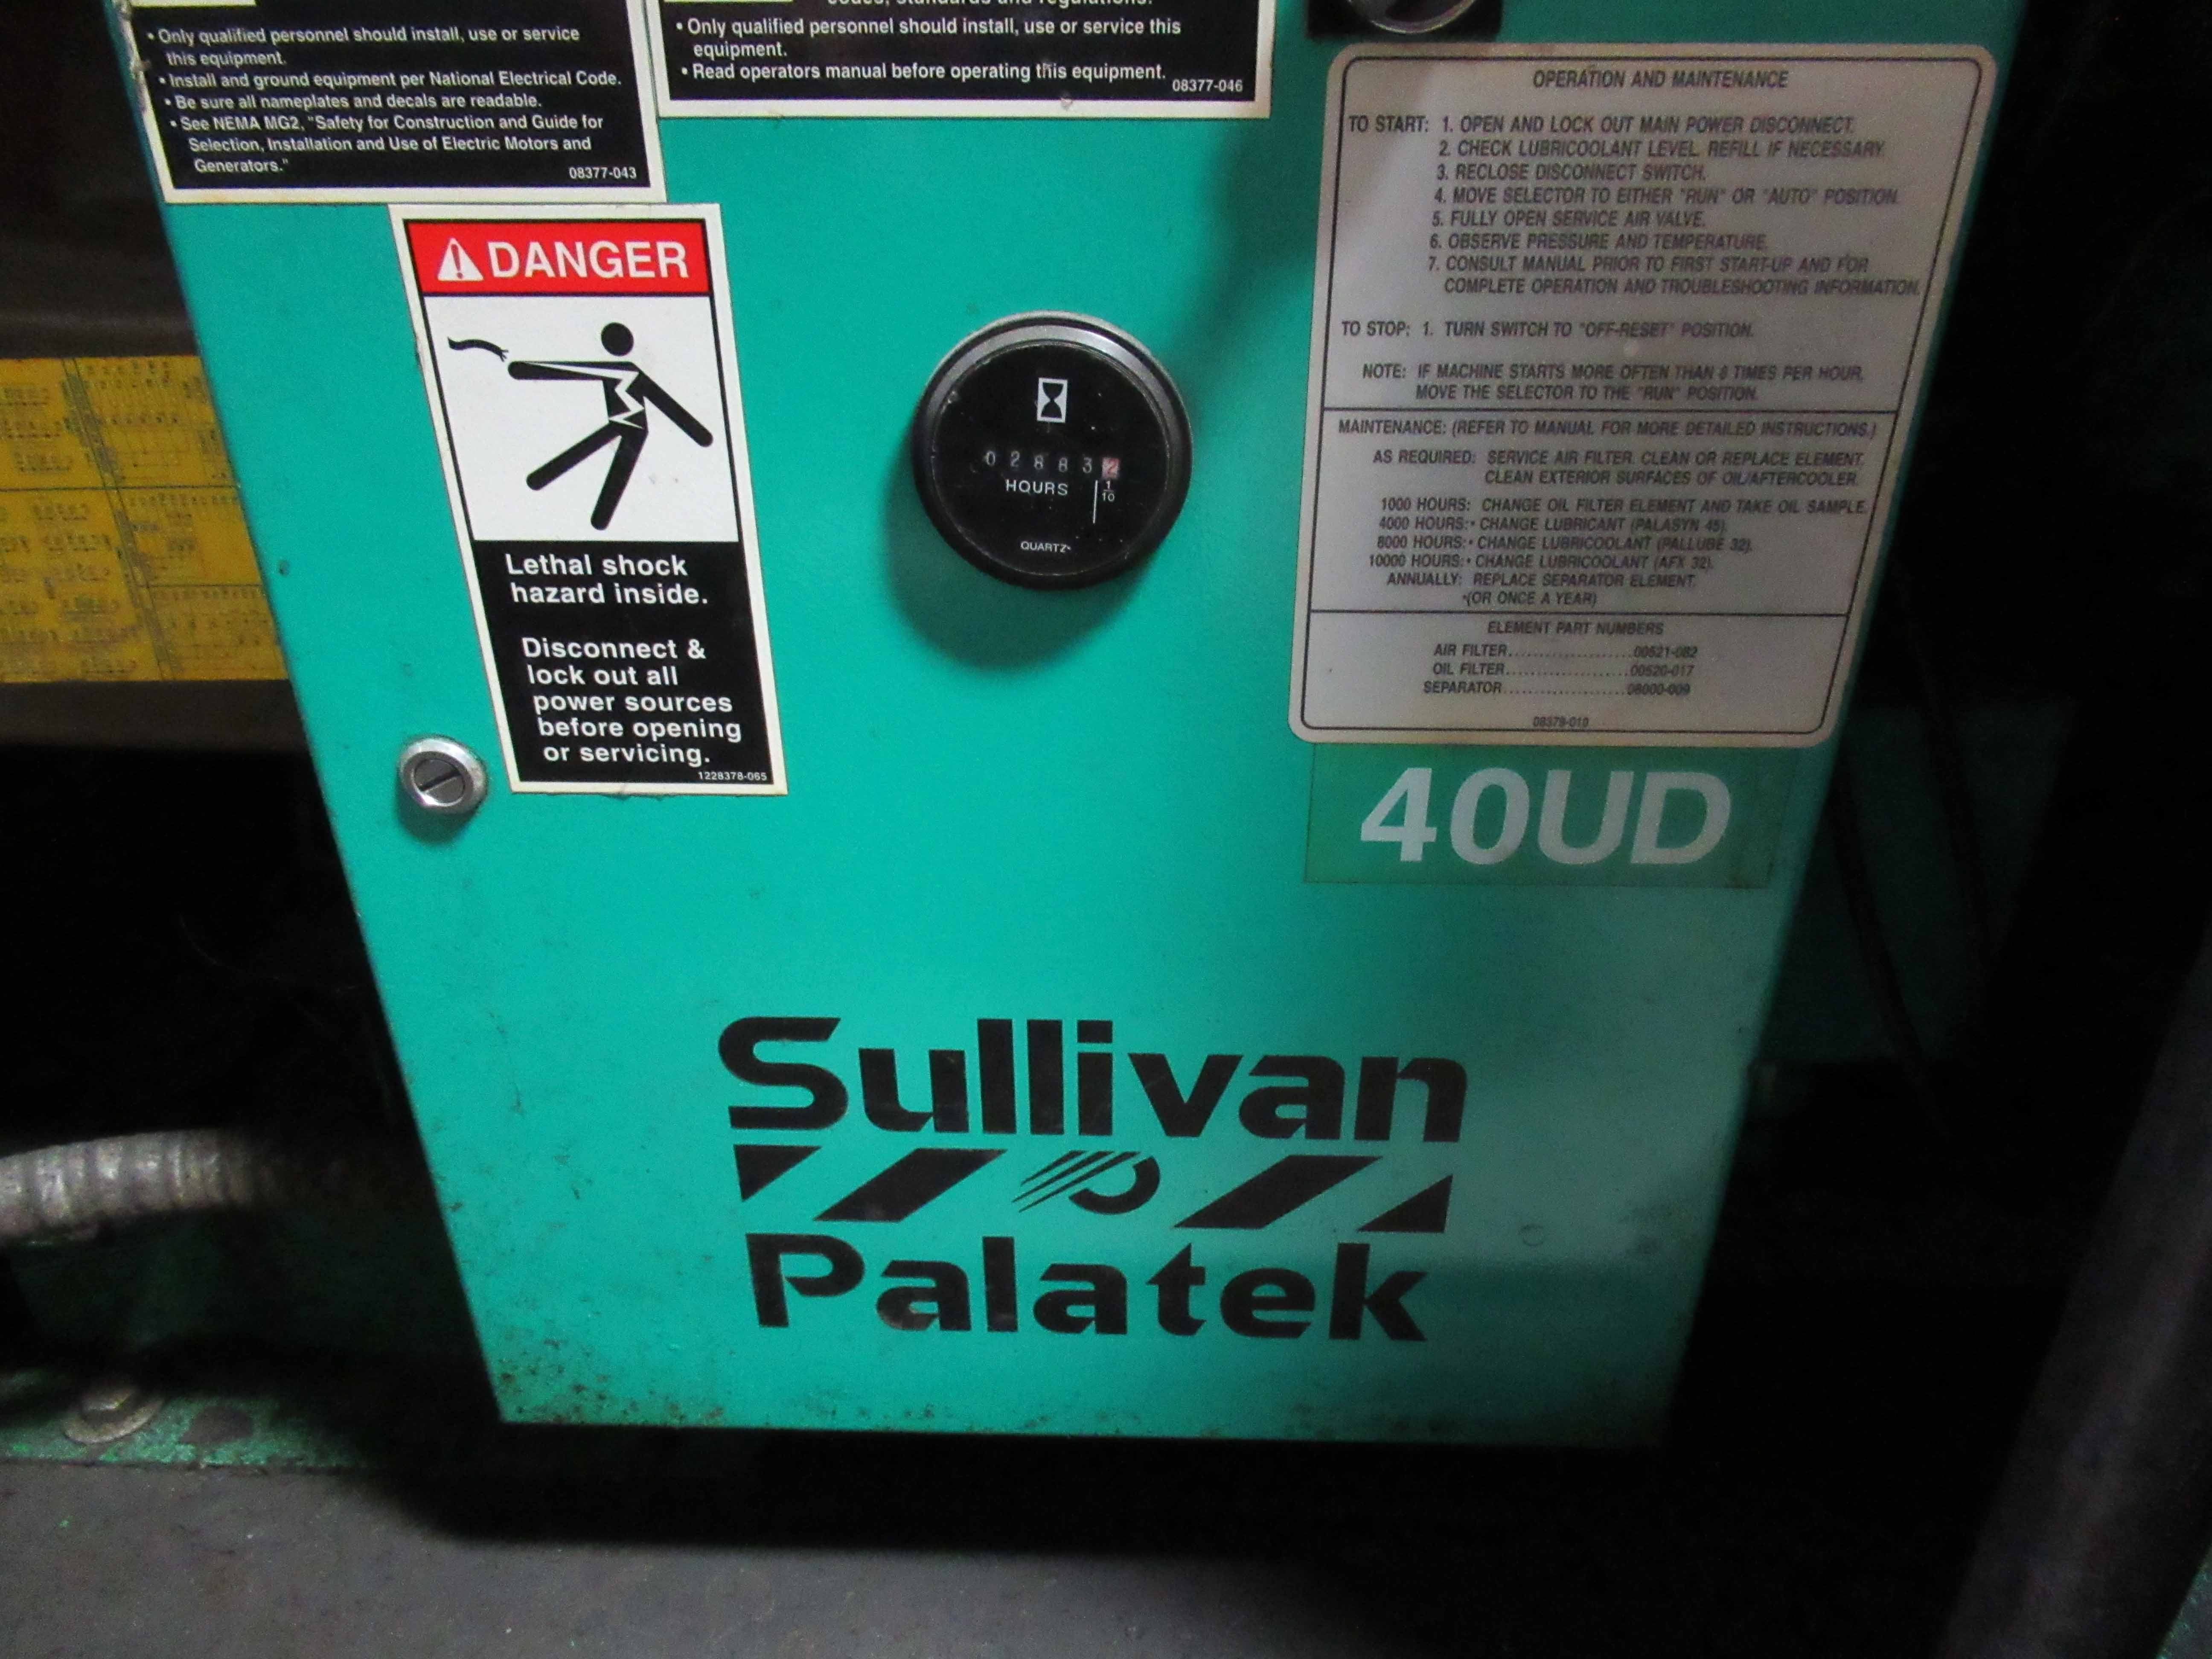 Lot 6 - SULLIVAN PALATEK 40UD ROTARY SCREW AIR COMPRESSOR, 40 HP motor. Seller will load for an additional